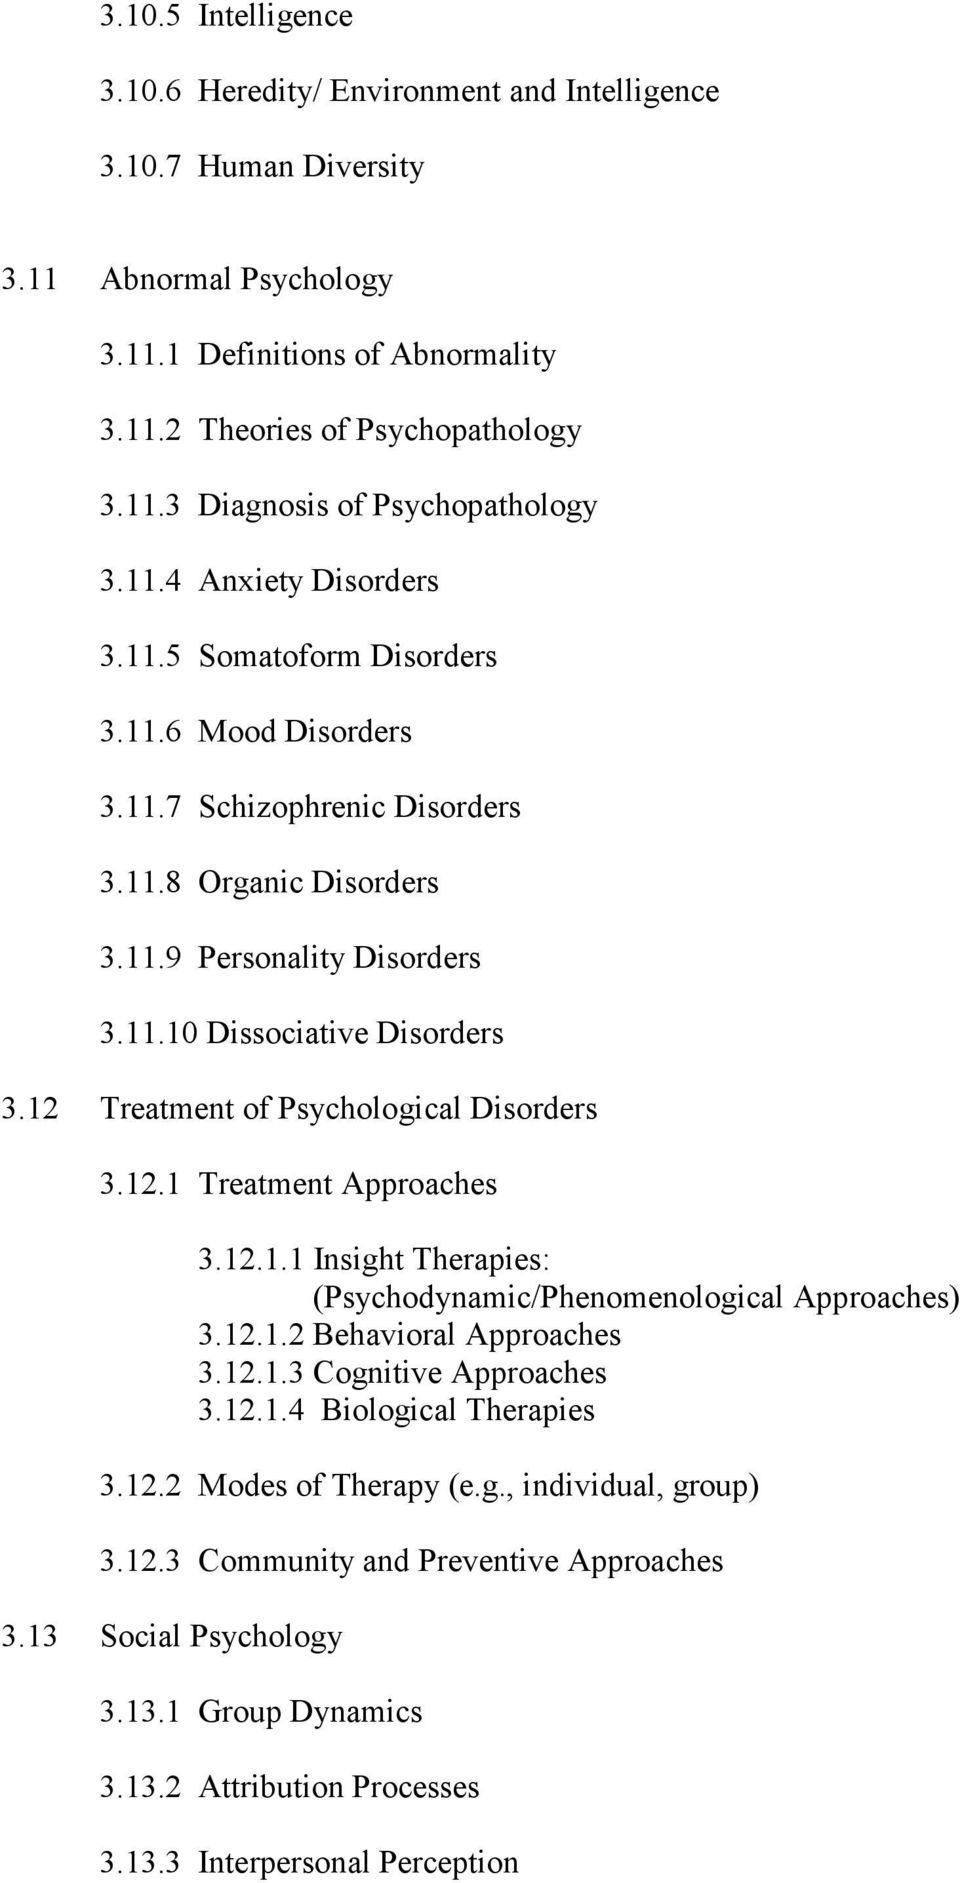 12 Treatment of Psychological Disorders 3.12.1 Treatment Approaches 3.12.1.1 Insight Therapies: (Psychodynamic/Phenomenological Approaches) 3.12.1.2 Behavioral Approaches 3.12.1.3 Cognitive Approaches 3.